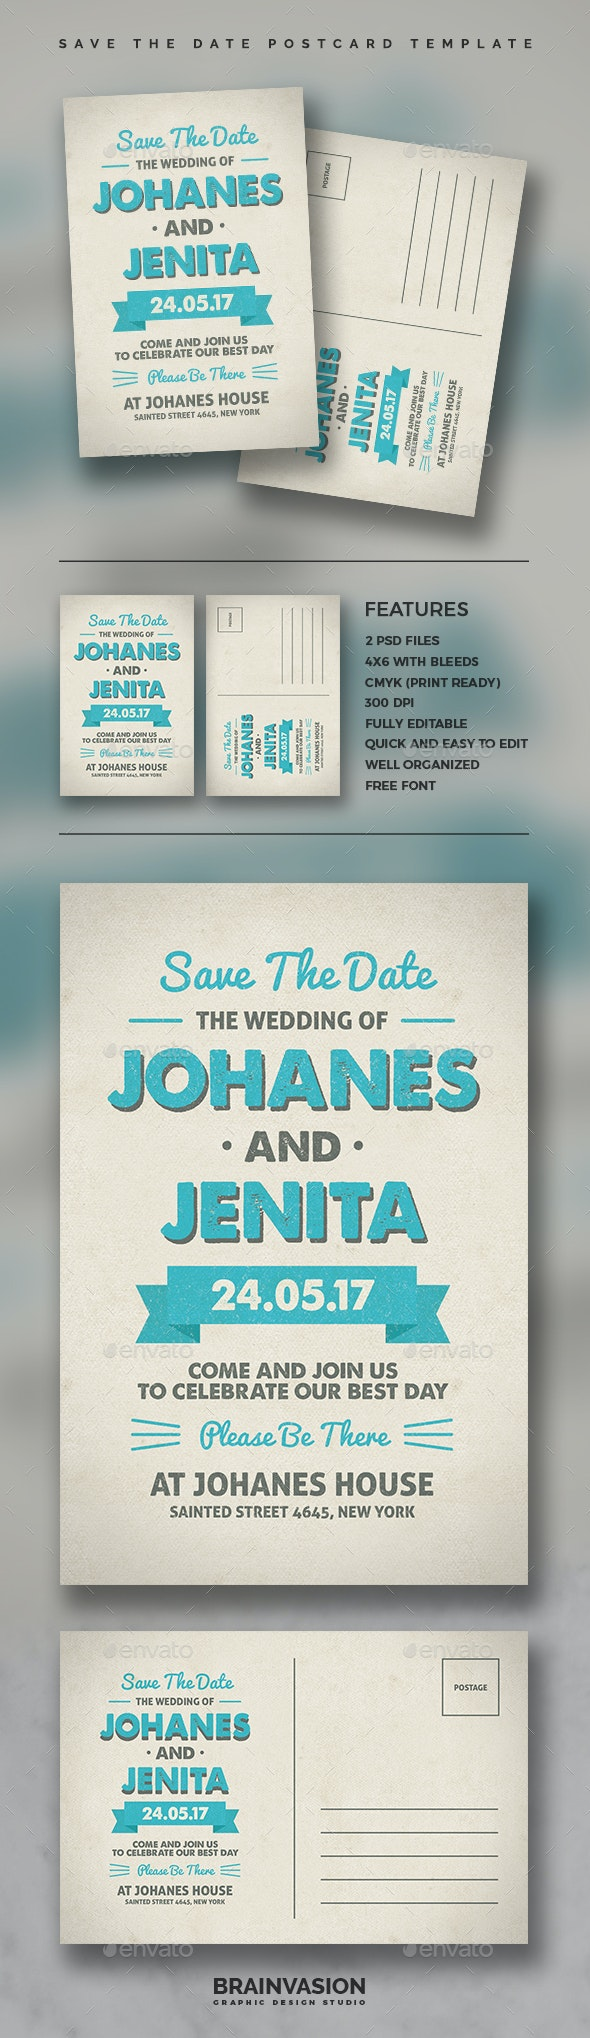 Save The Date Postcard Template Vol.02 - Cards & Invites Print Templates